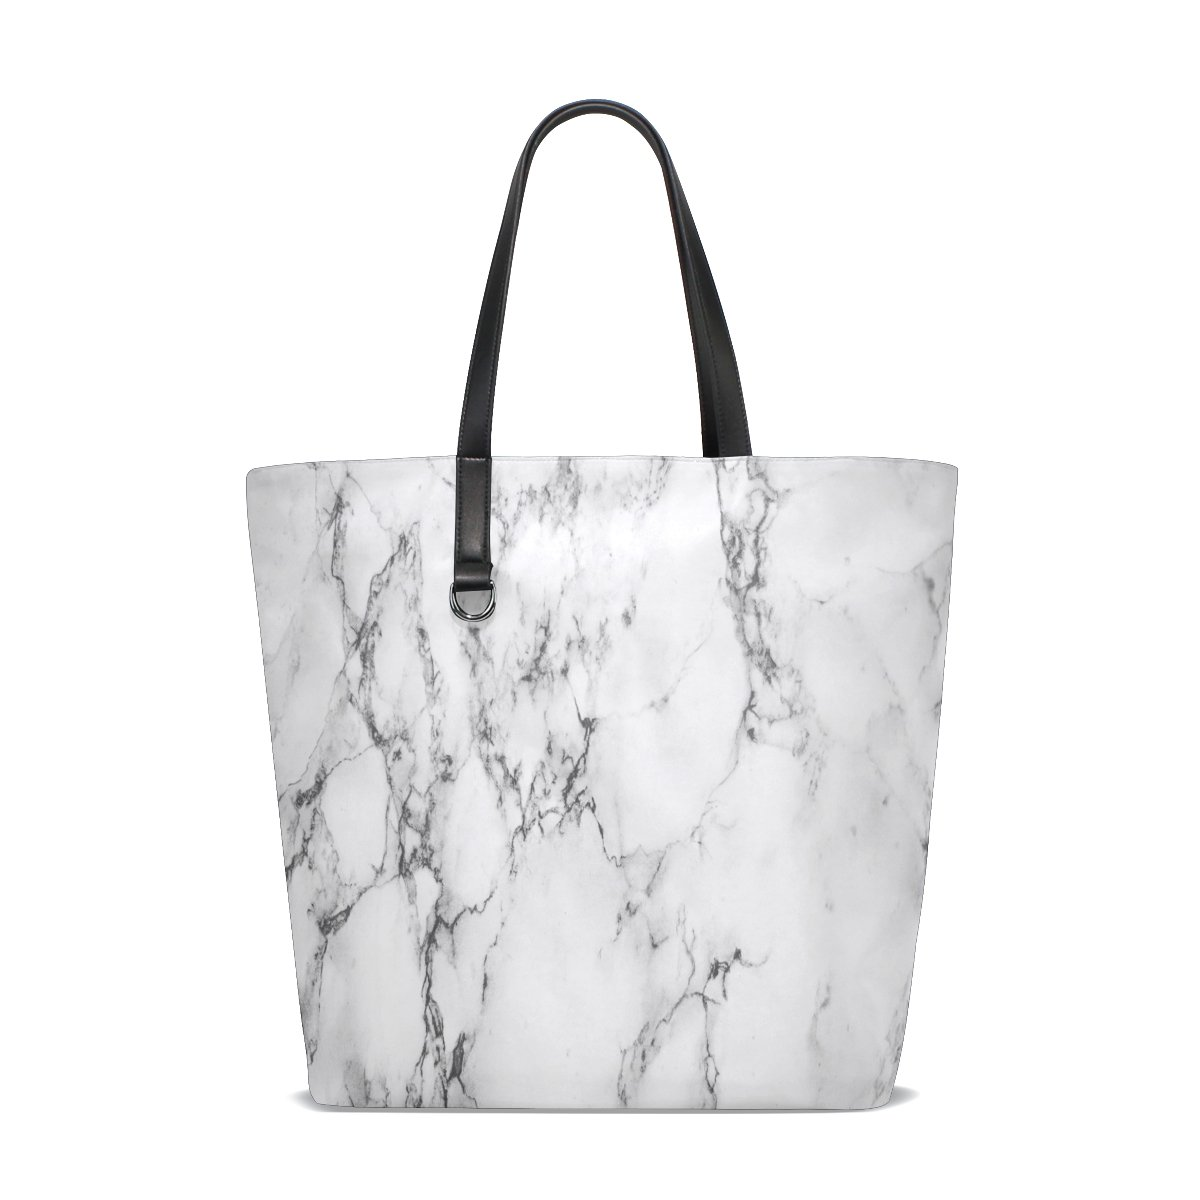 ALAZA Hipster Marble Texture Tote Bag Purse Handbag for Women Girls g1225304p174c204s304